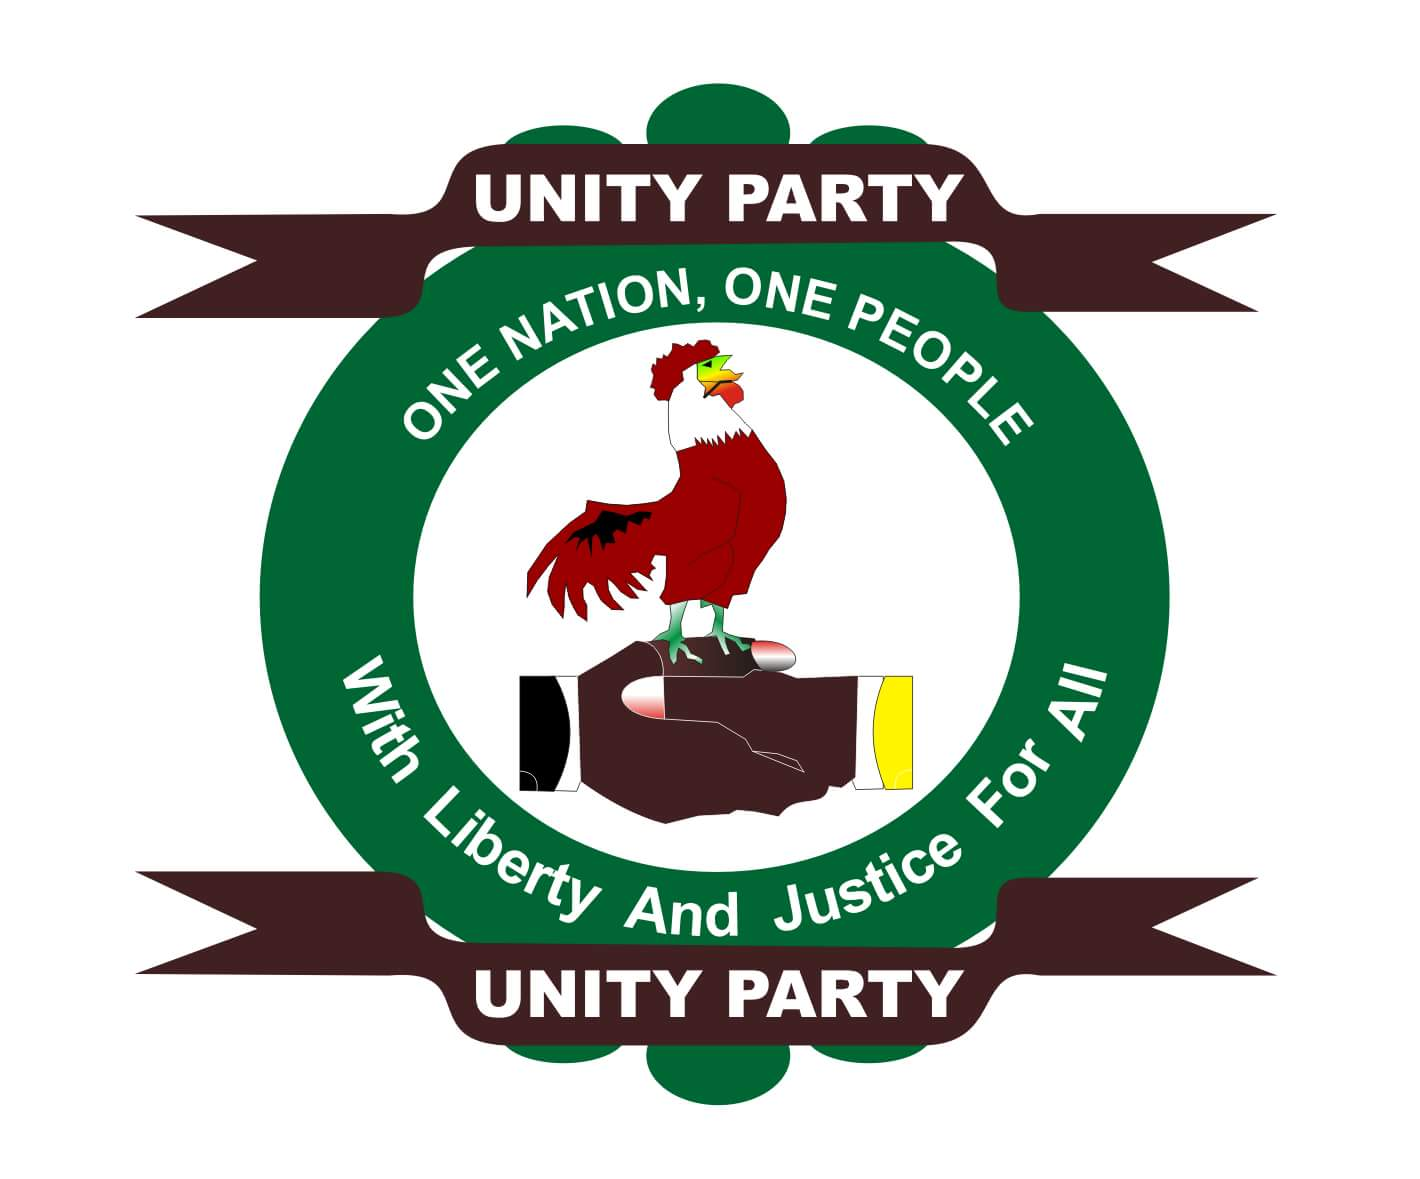 Unity Party (UP)